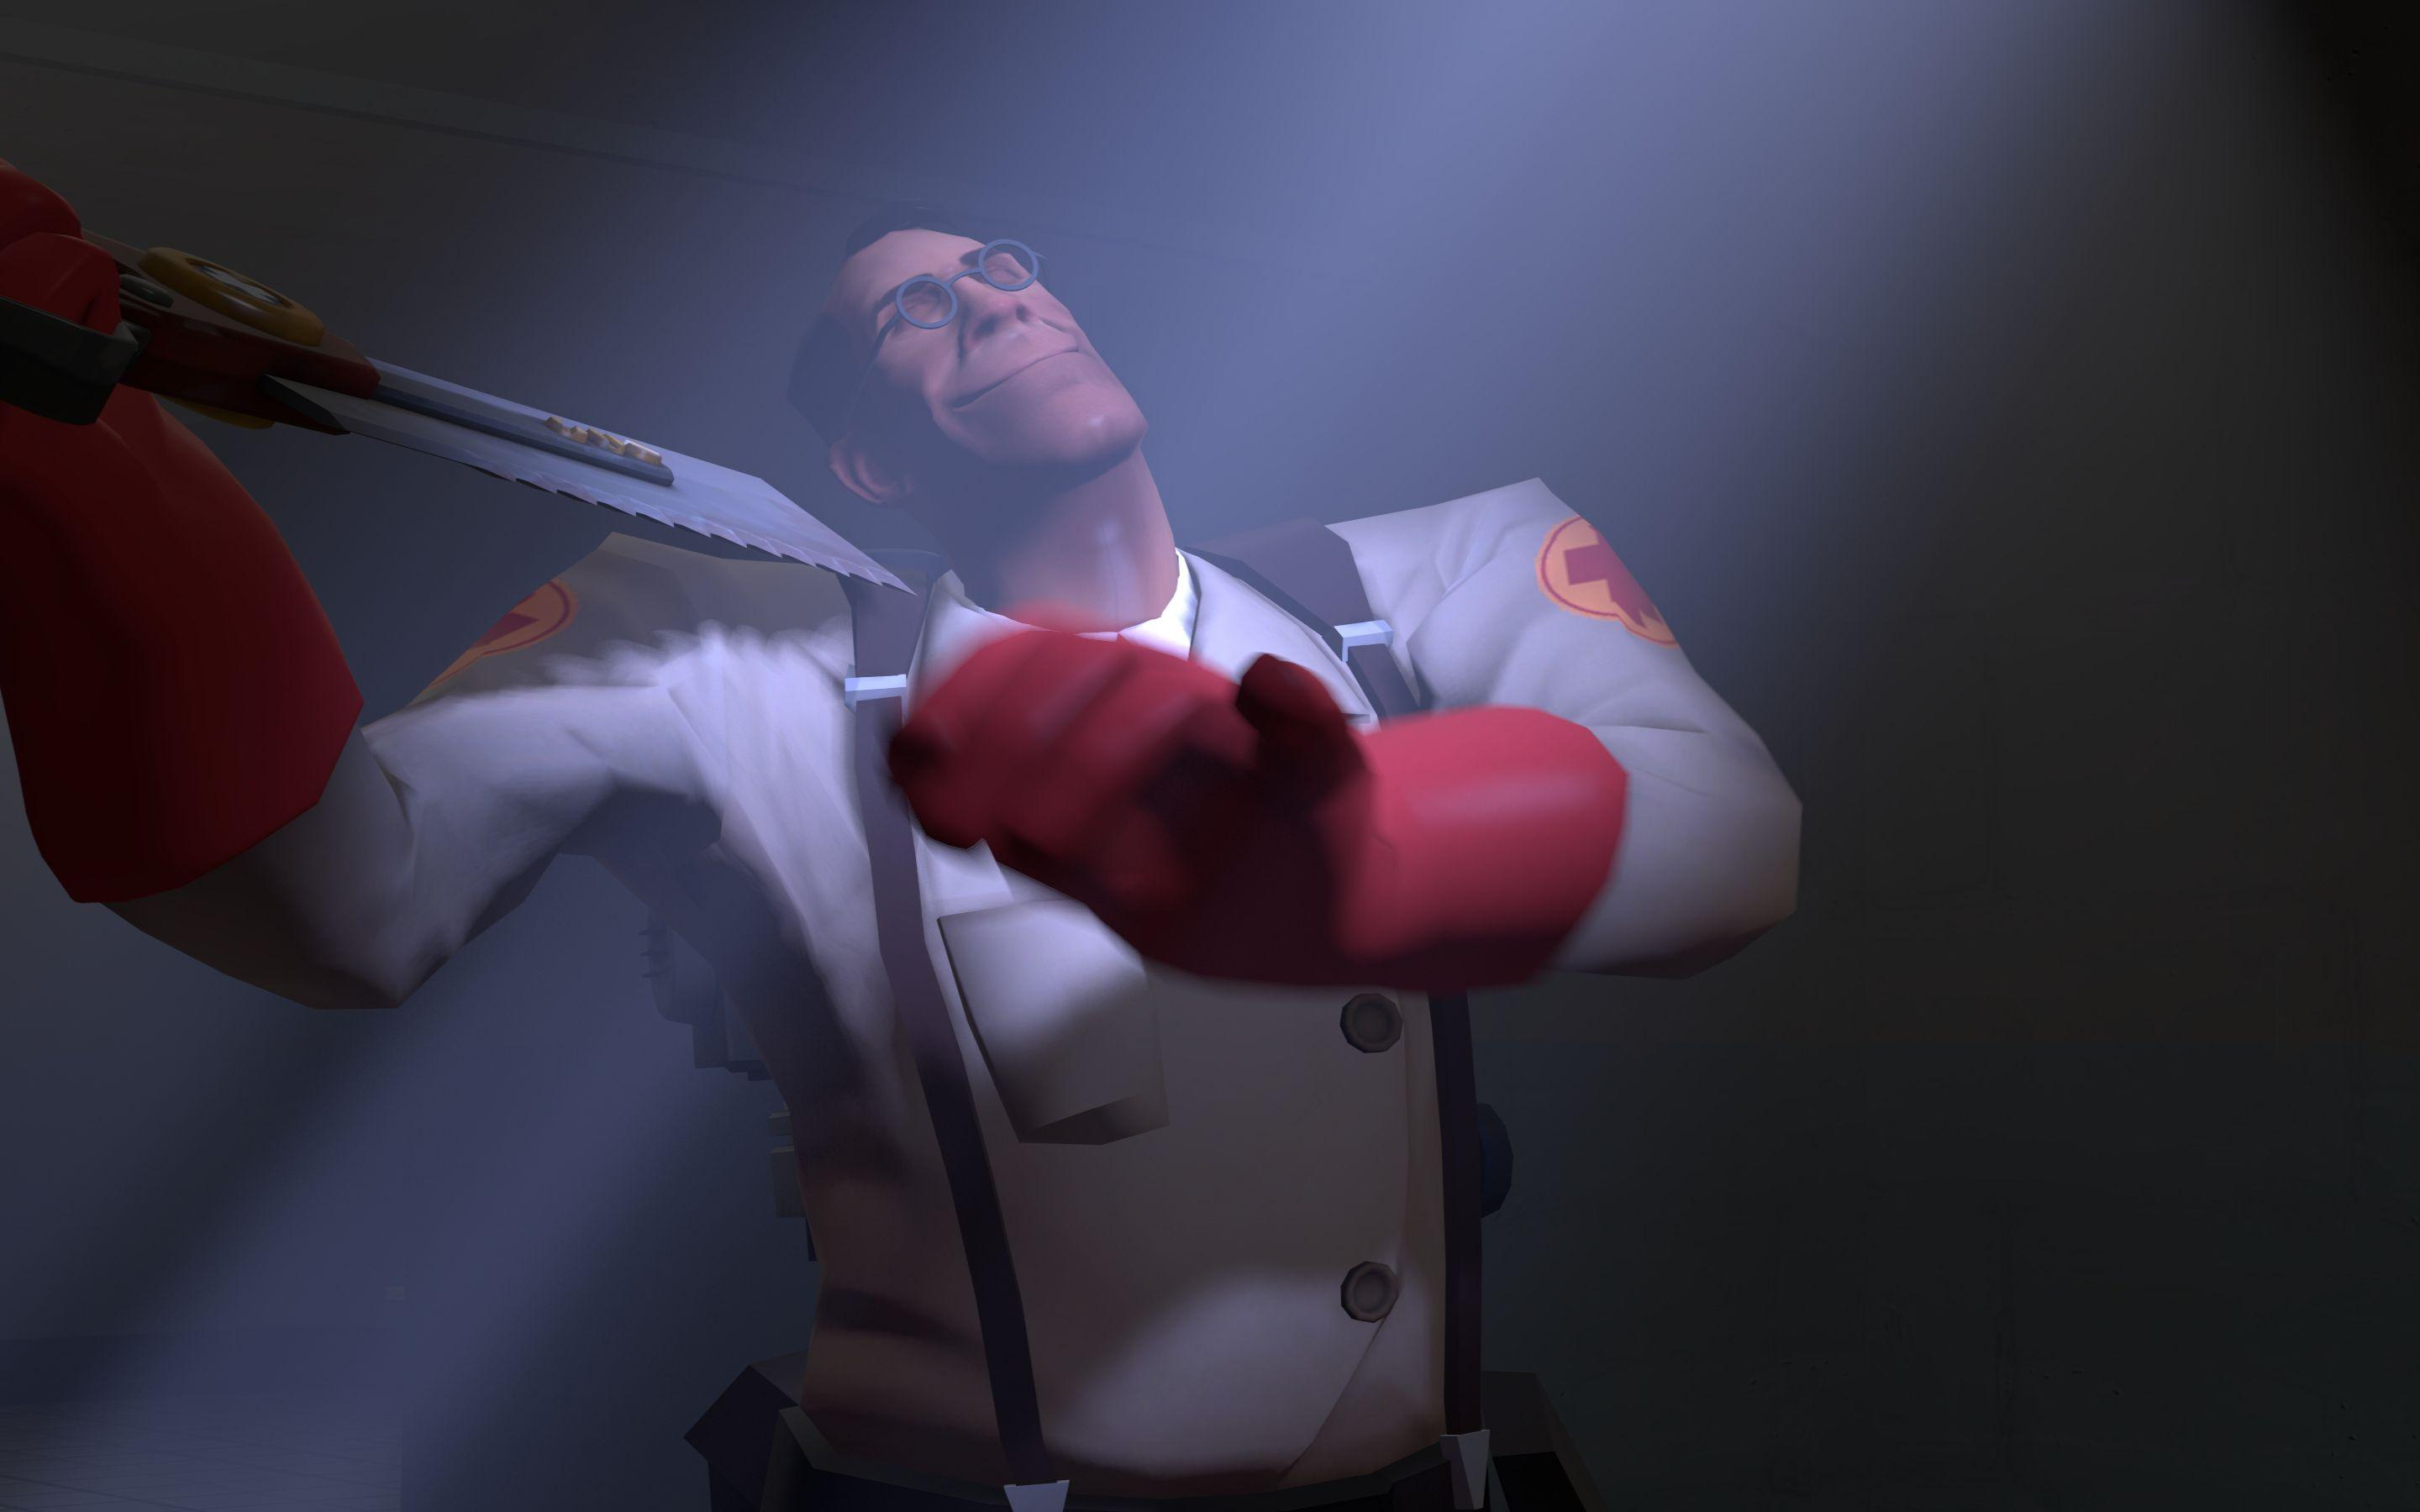 Team Fortress 2 Medic Wallpapers - Wallpaper Cave